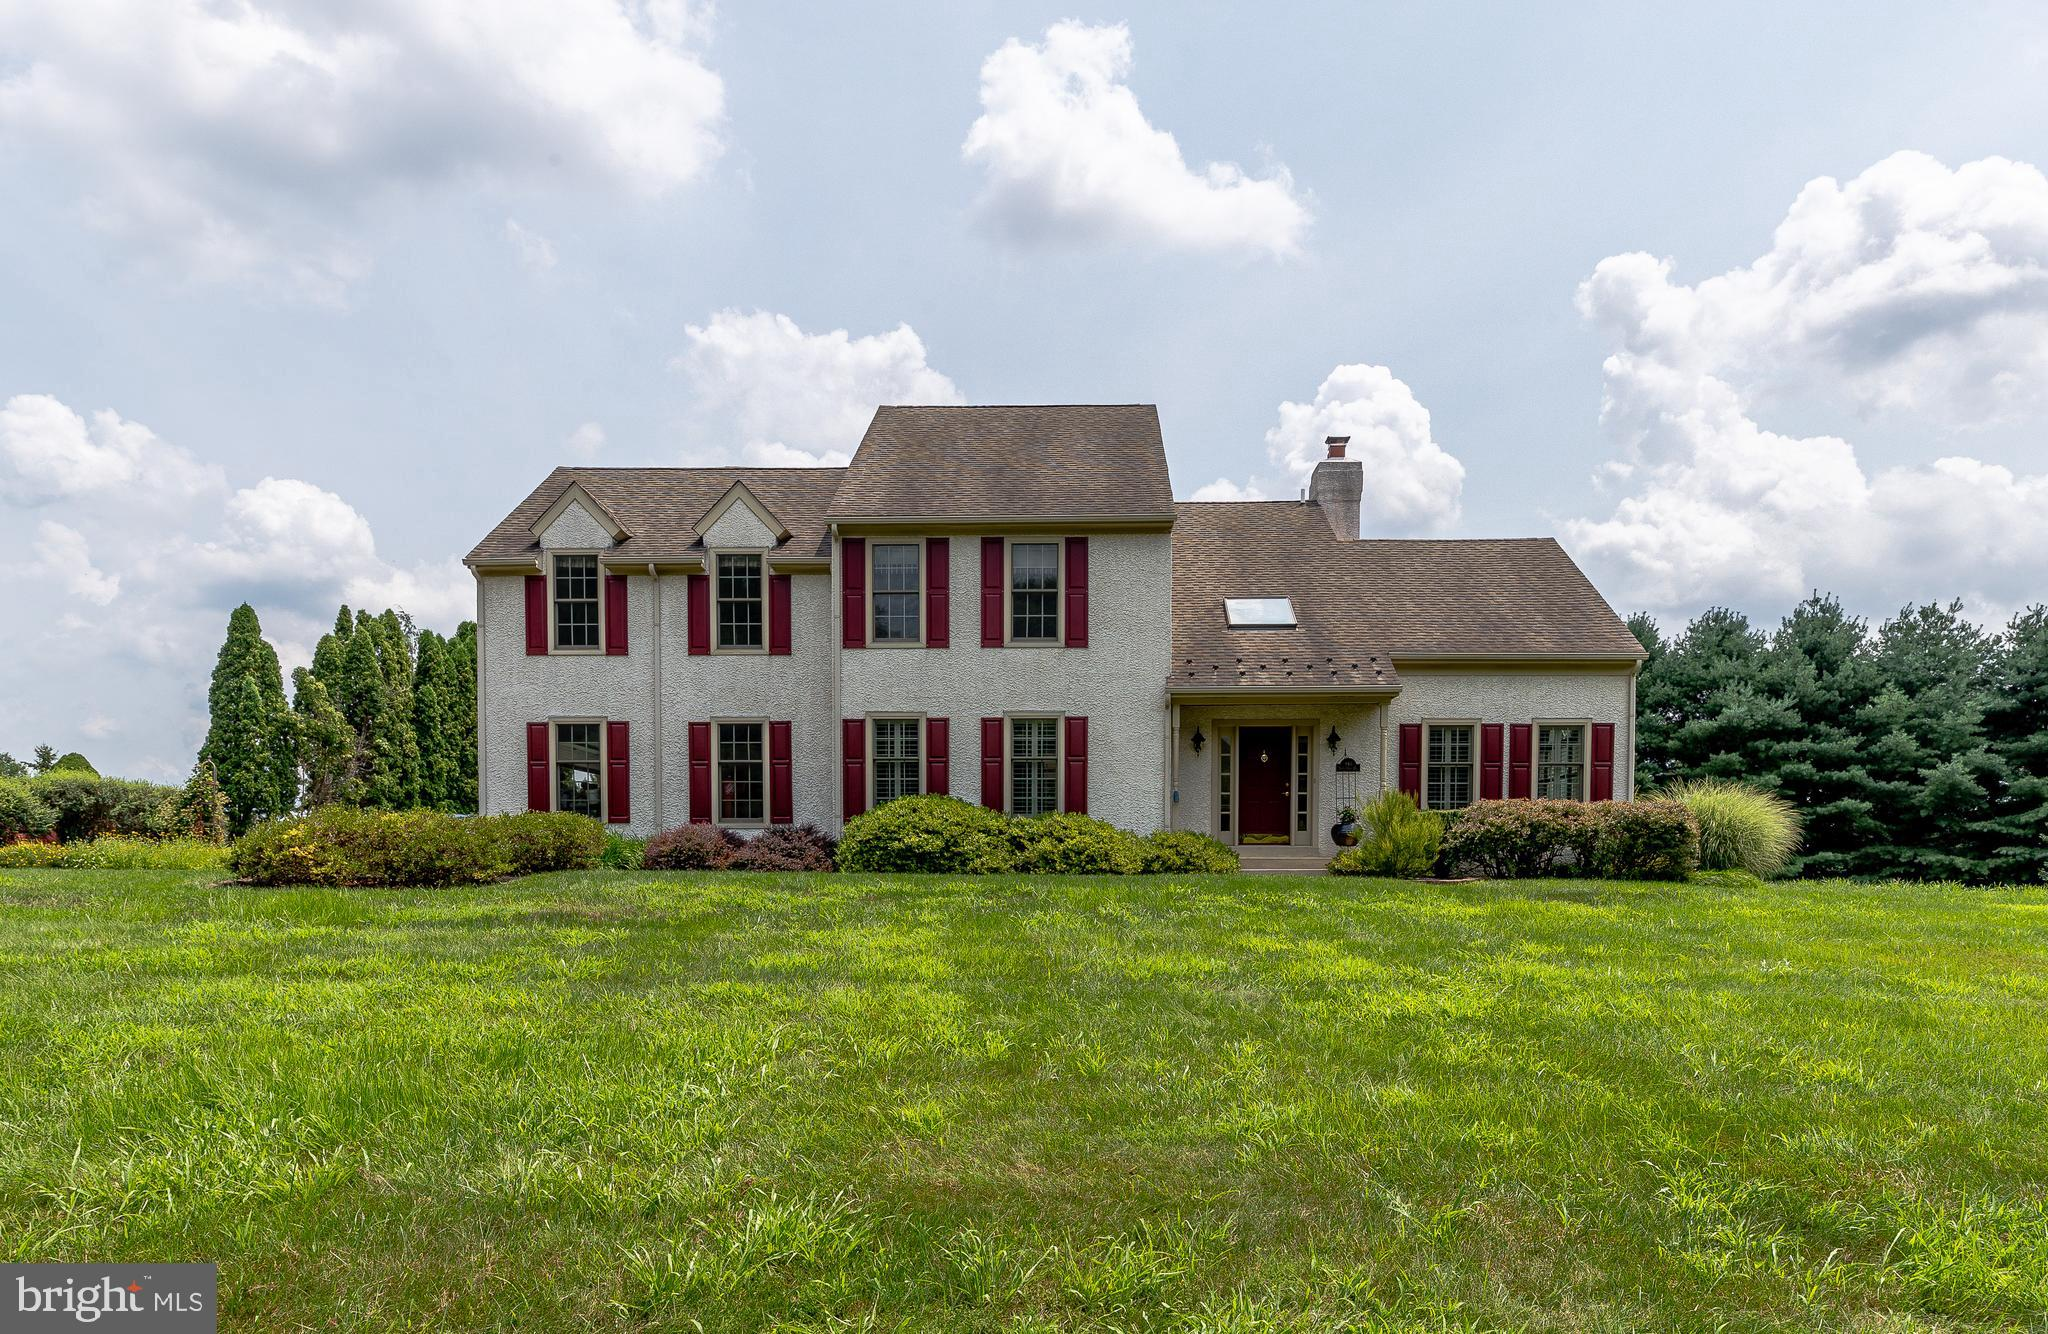 This is your chance to live in Meadowcroft! Fantastic views, gorgeous lot, awesome floor plan! Many updates include rooms freshly painted, newer-2020 High Efficiency HVAC System, new oversized septic tank, expansive composite deck with patio and fire pit, hardwood floors throughout. Enter the front door into the 2 story foyer with turned stairs, crown molding and ceramic tile floor. To the right of the foyer is the well-lit inviting living room with cathedral ceilings; to the left you will be in the formal dining room. Continue through the foyer into the very accommodating family room with fire place which opens up to the Kitchen. The oversized Kitchen island is an entertainers dream! Off the family room is the private office with lots of natural light. The 2nd level boasts a Master Bedroom Suite with 1 large his and hers Walk In Closet, Master Bath with Whirlpool Tub and separate shower. There are also 3 more large bedrooms and full hall bath. Walk downstairs to the lower level and you will find an awesome finished basement that could be used as 2nd family room, office, or gym. Close to the West Chester borough with all of its quaint shops, restaurants and festivals. So convenient to the train, major roads, and also with-in the award-winning West Chester school district. Pack your bags and move right in!